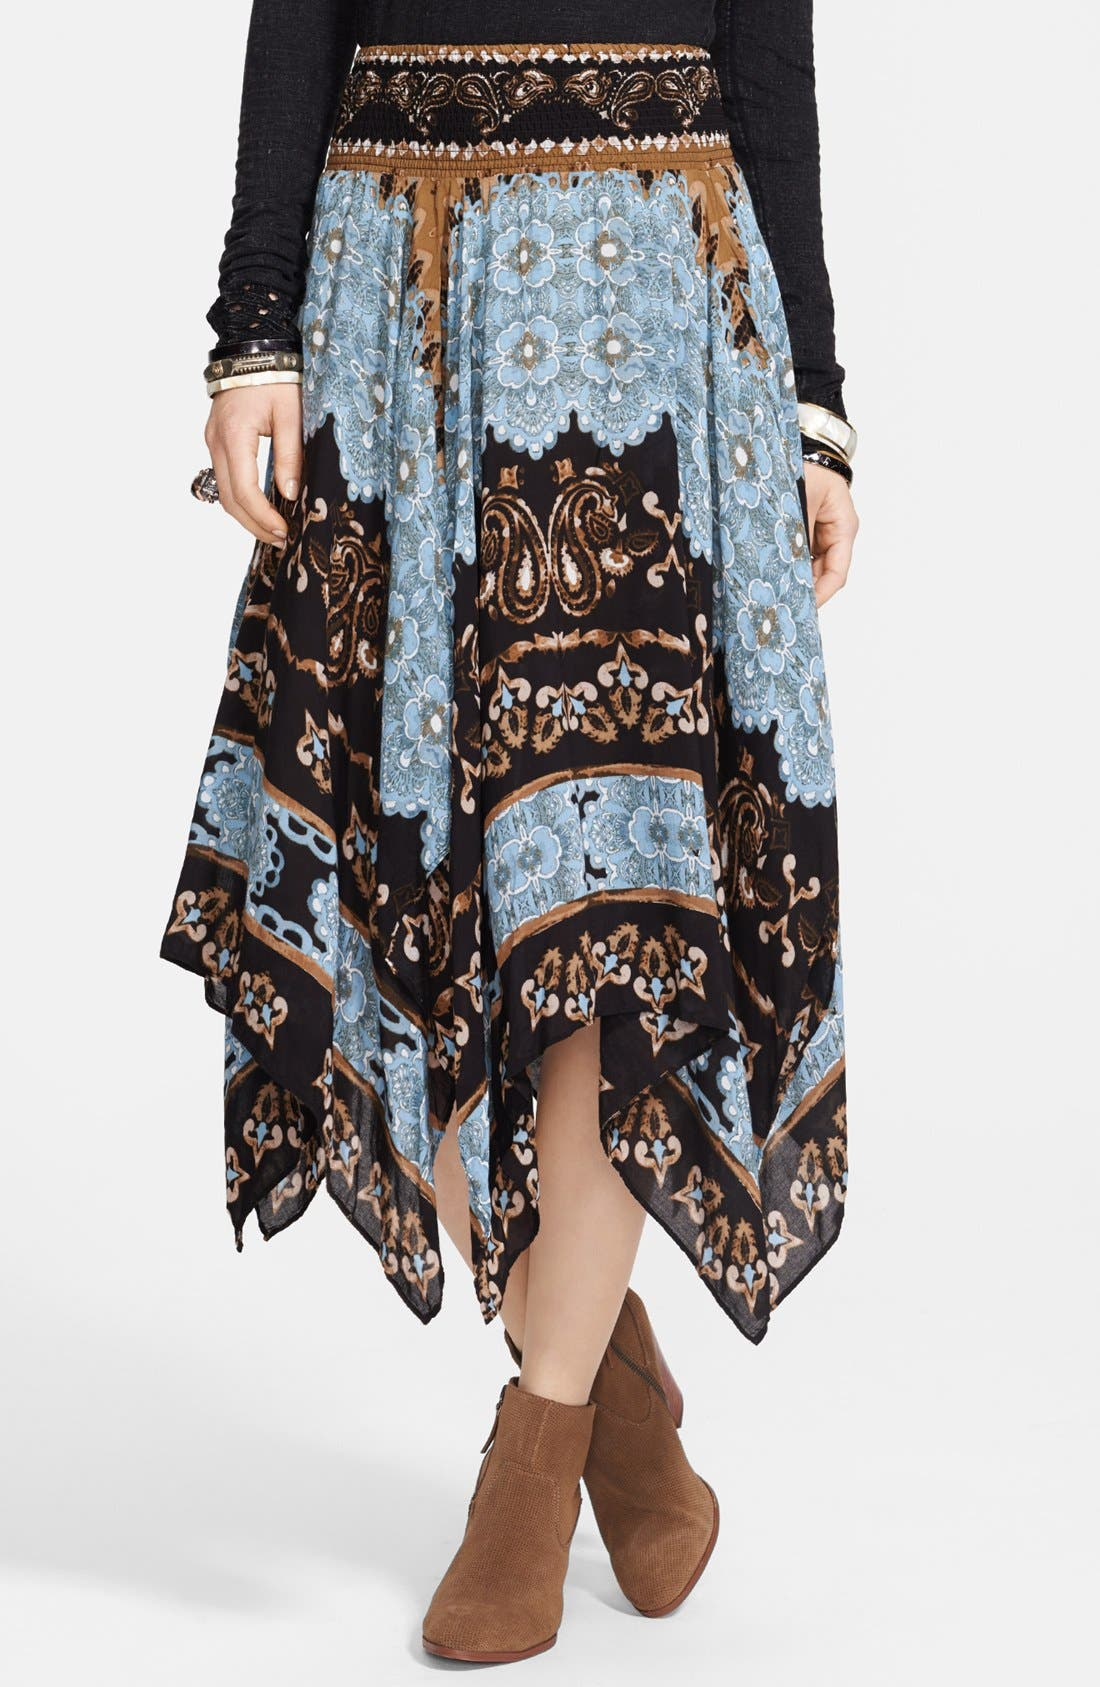 Alternate Image 1 Selected - Free People 'Fly Away' Print Handkerchief Skirt